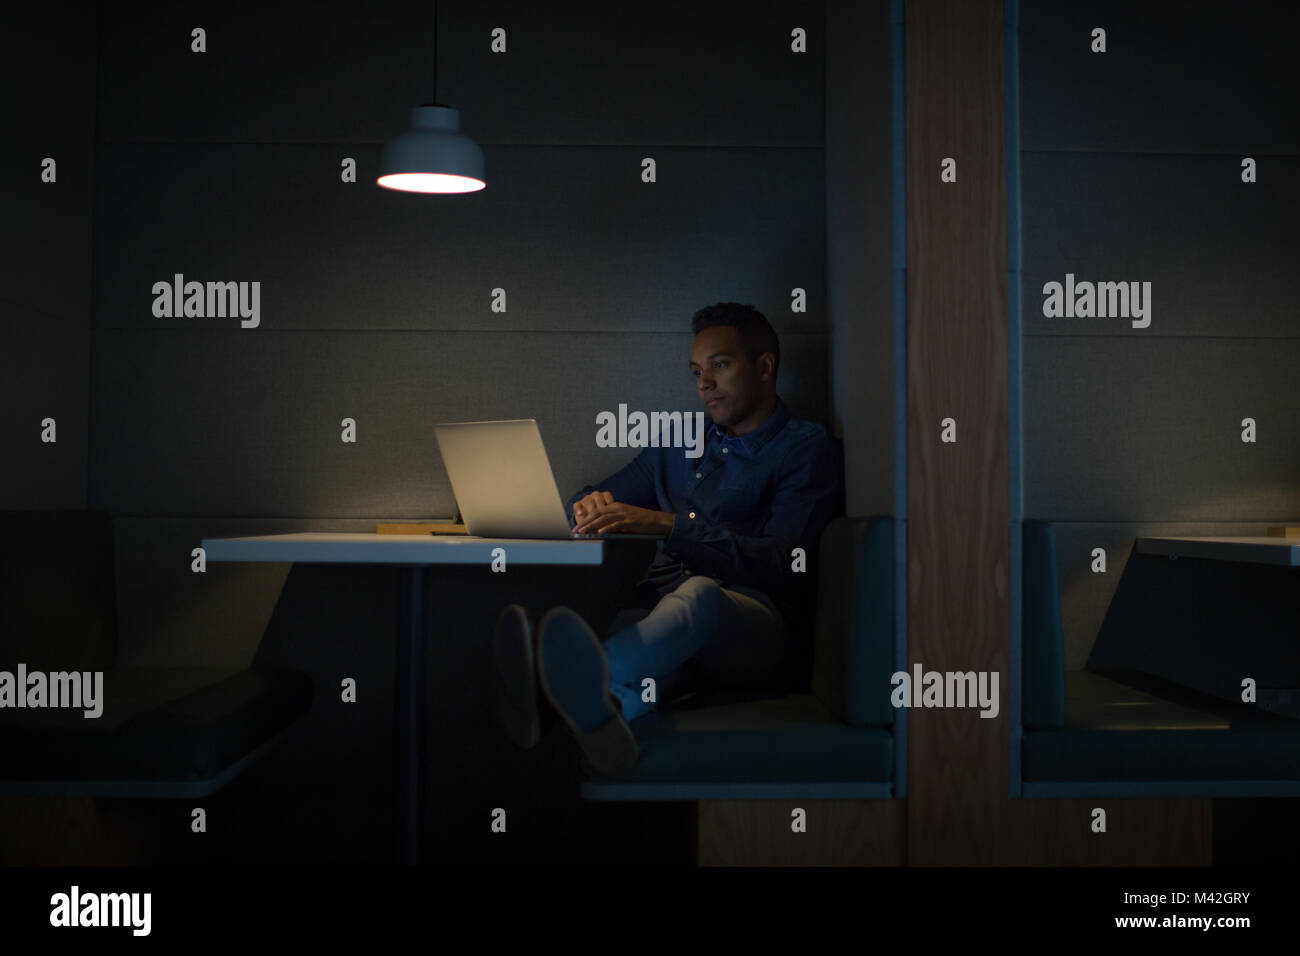 Businessman working late at night in office alone - Stock Image